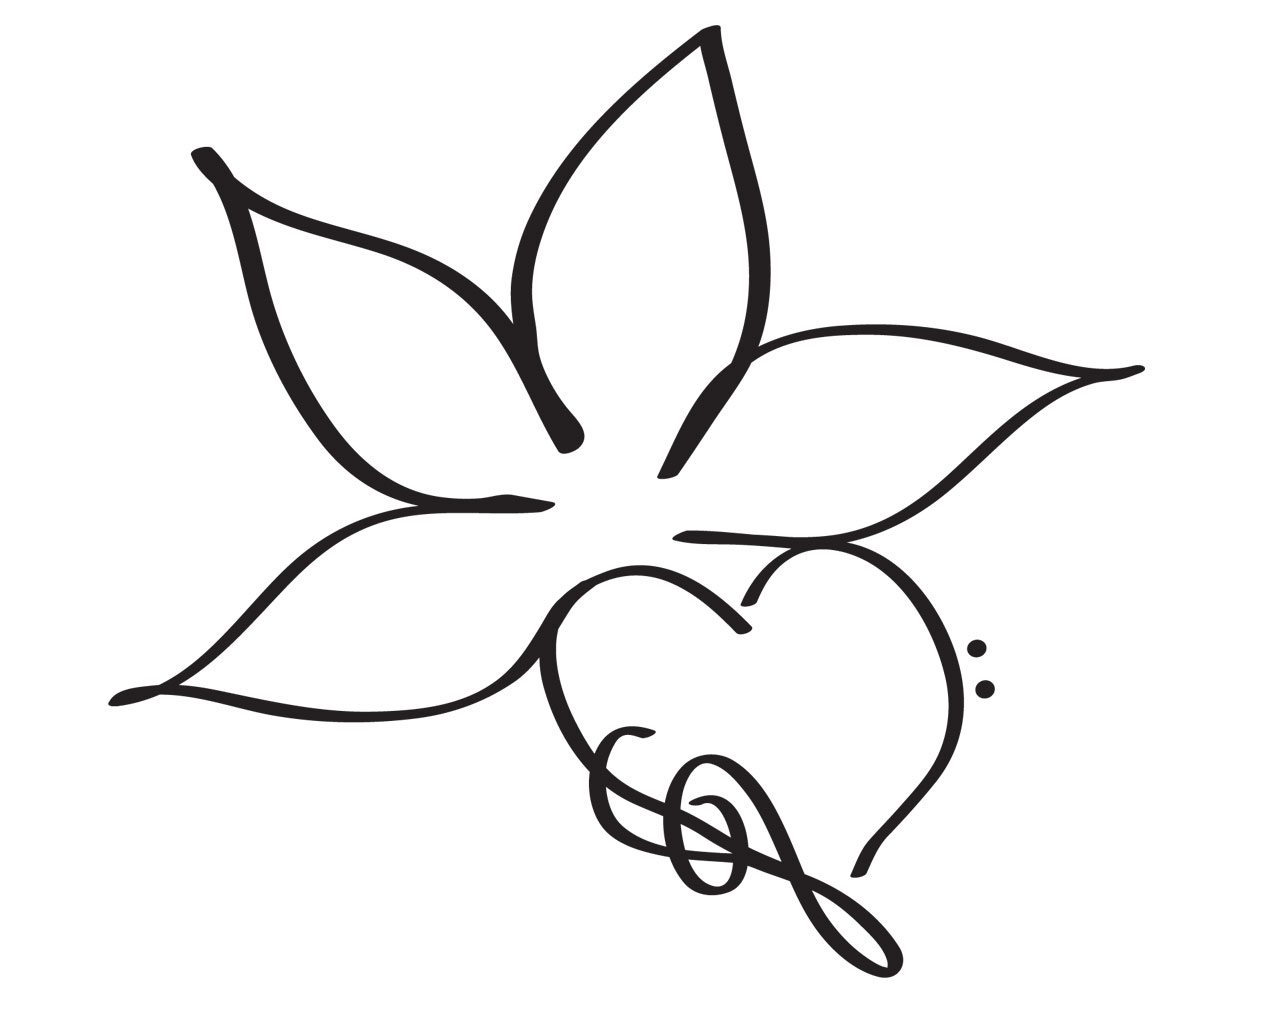 Basic Flower Drawing